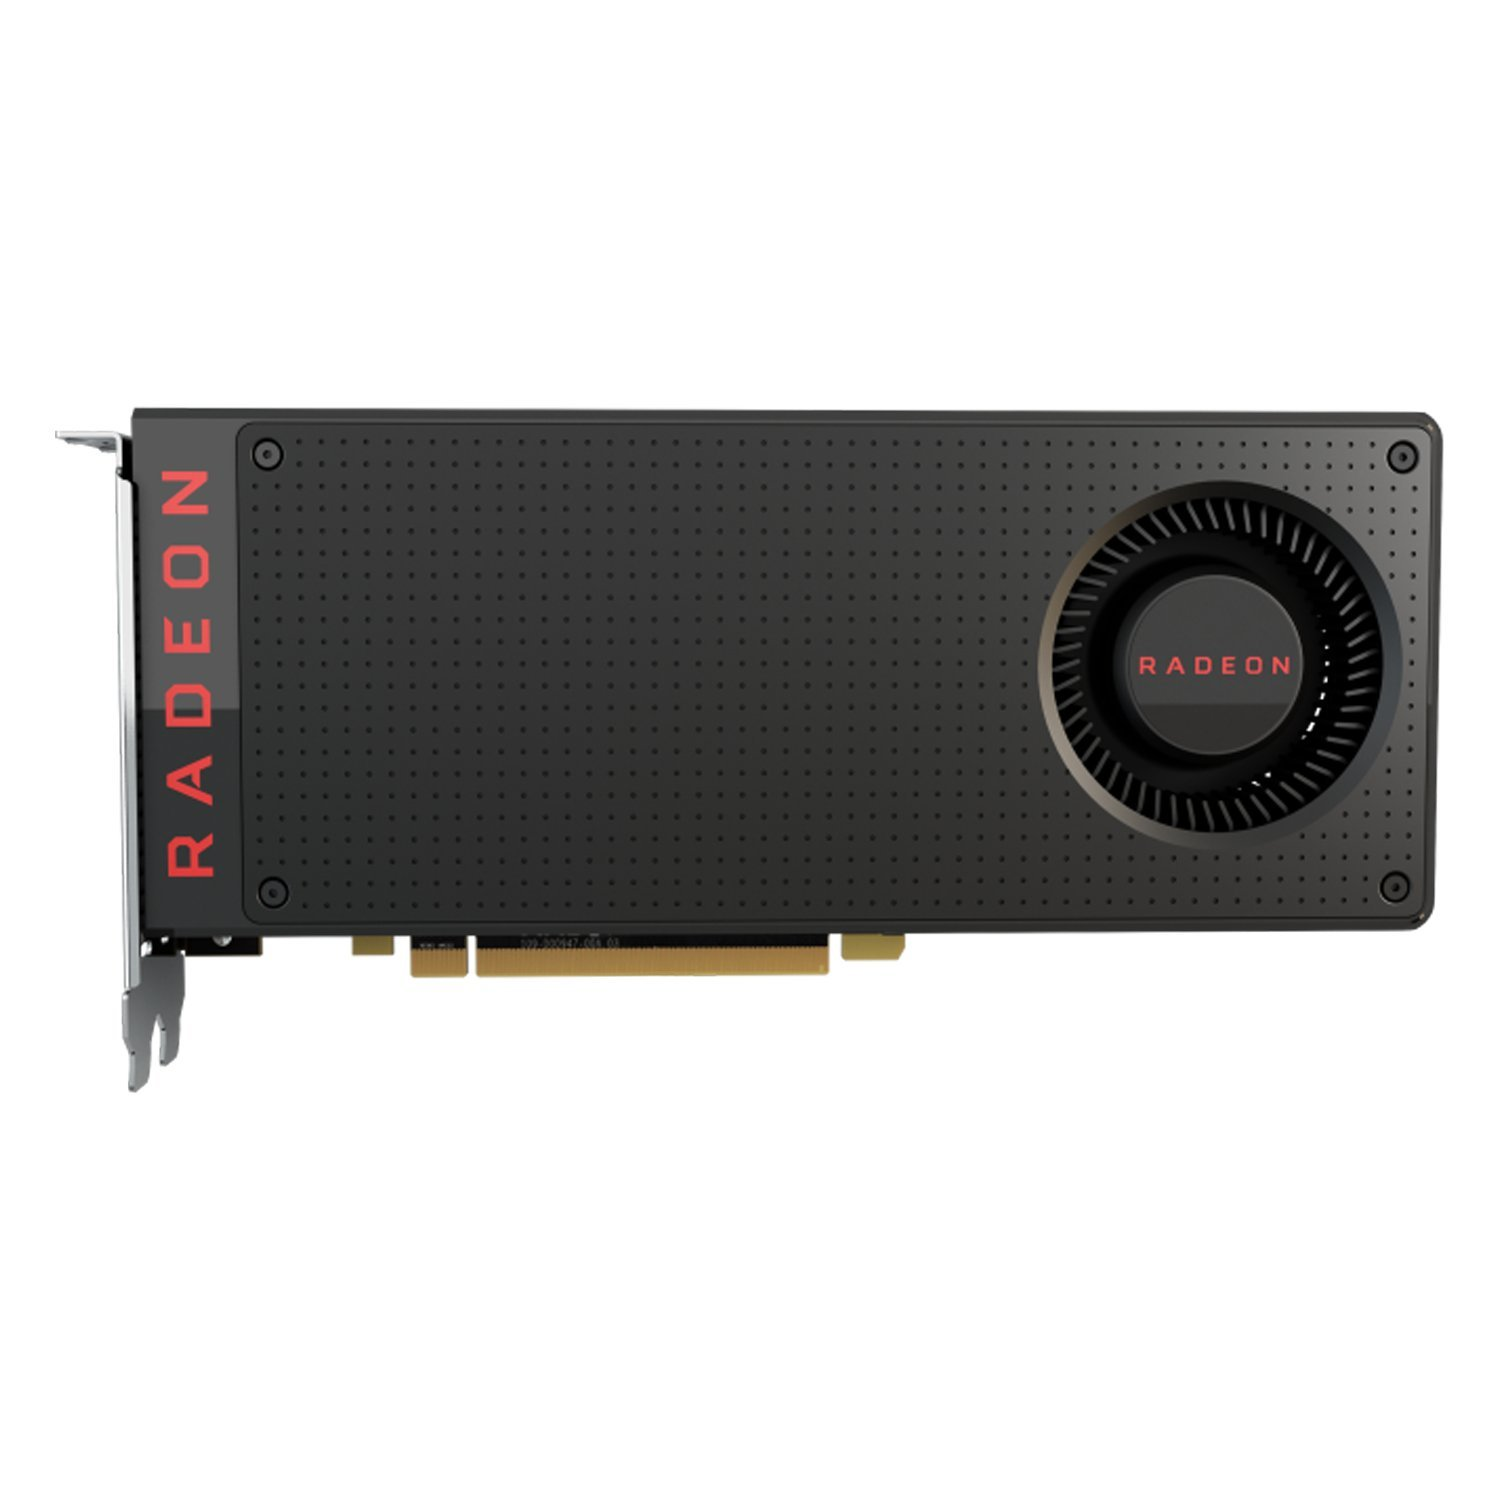 USED,Sapphire RX 570 4G graphics cards 7000MHz GDDR5 256bits HDMI+DP*3 PCI-X16(China)